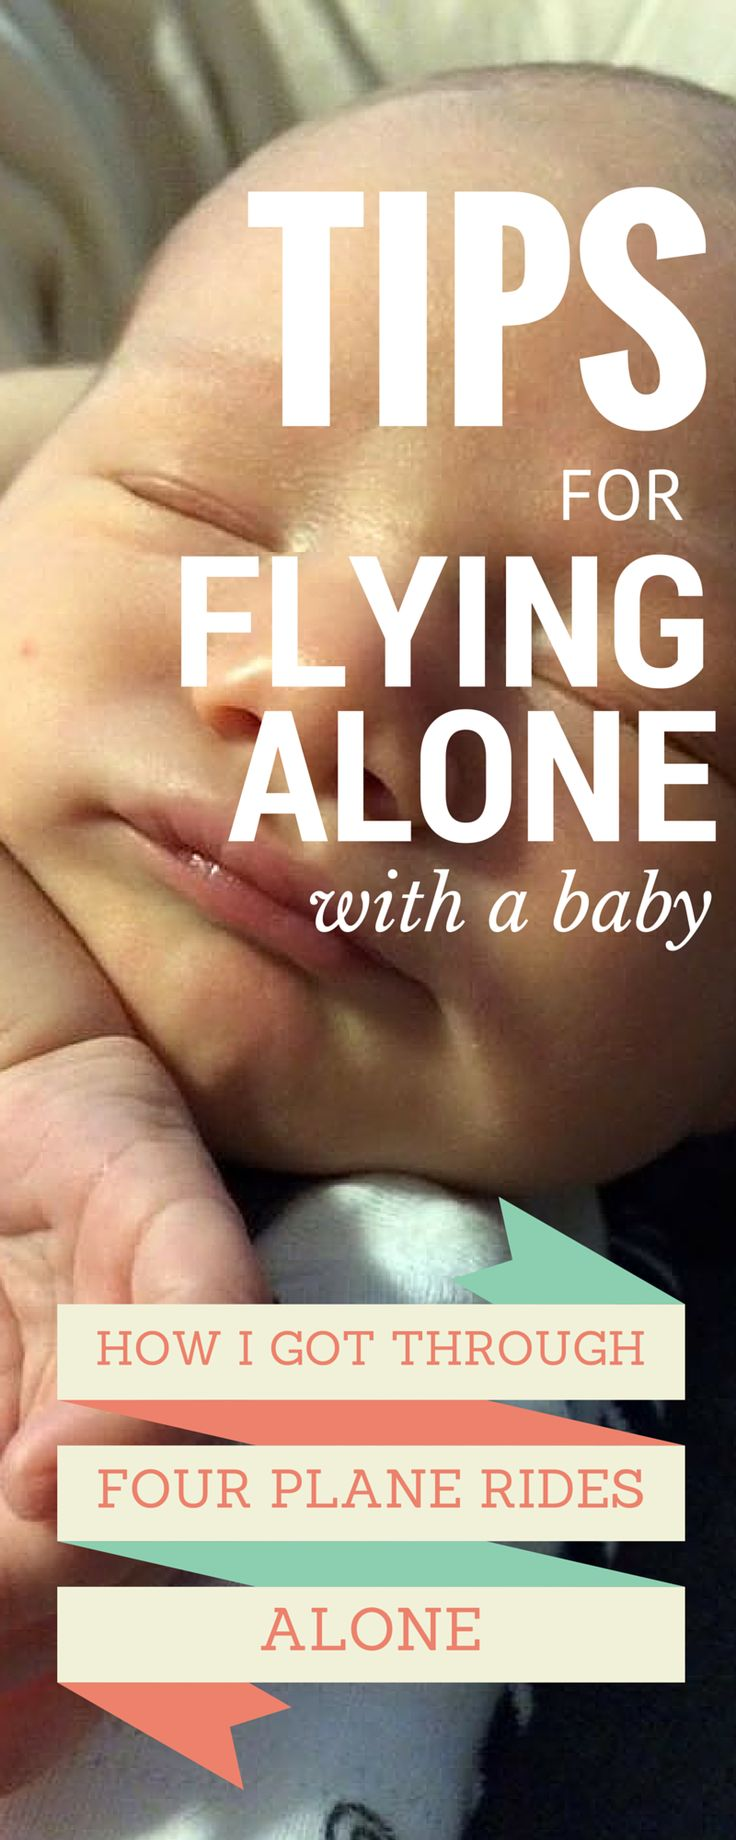 Tips for Flying Alone With a Baby